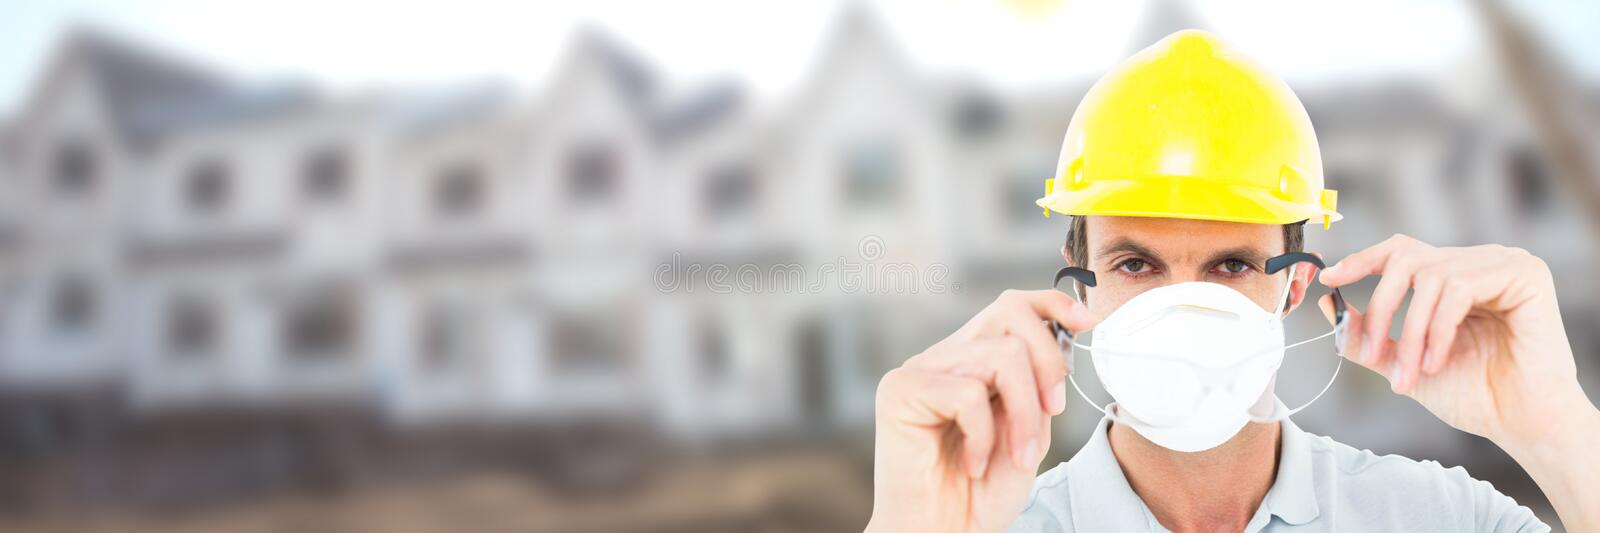 Construction Worker on building site wearing mask royalty free stock photography